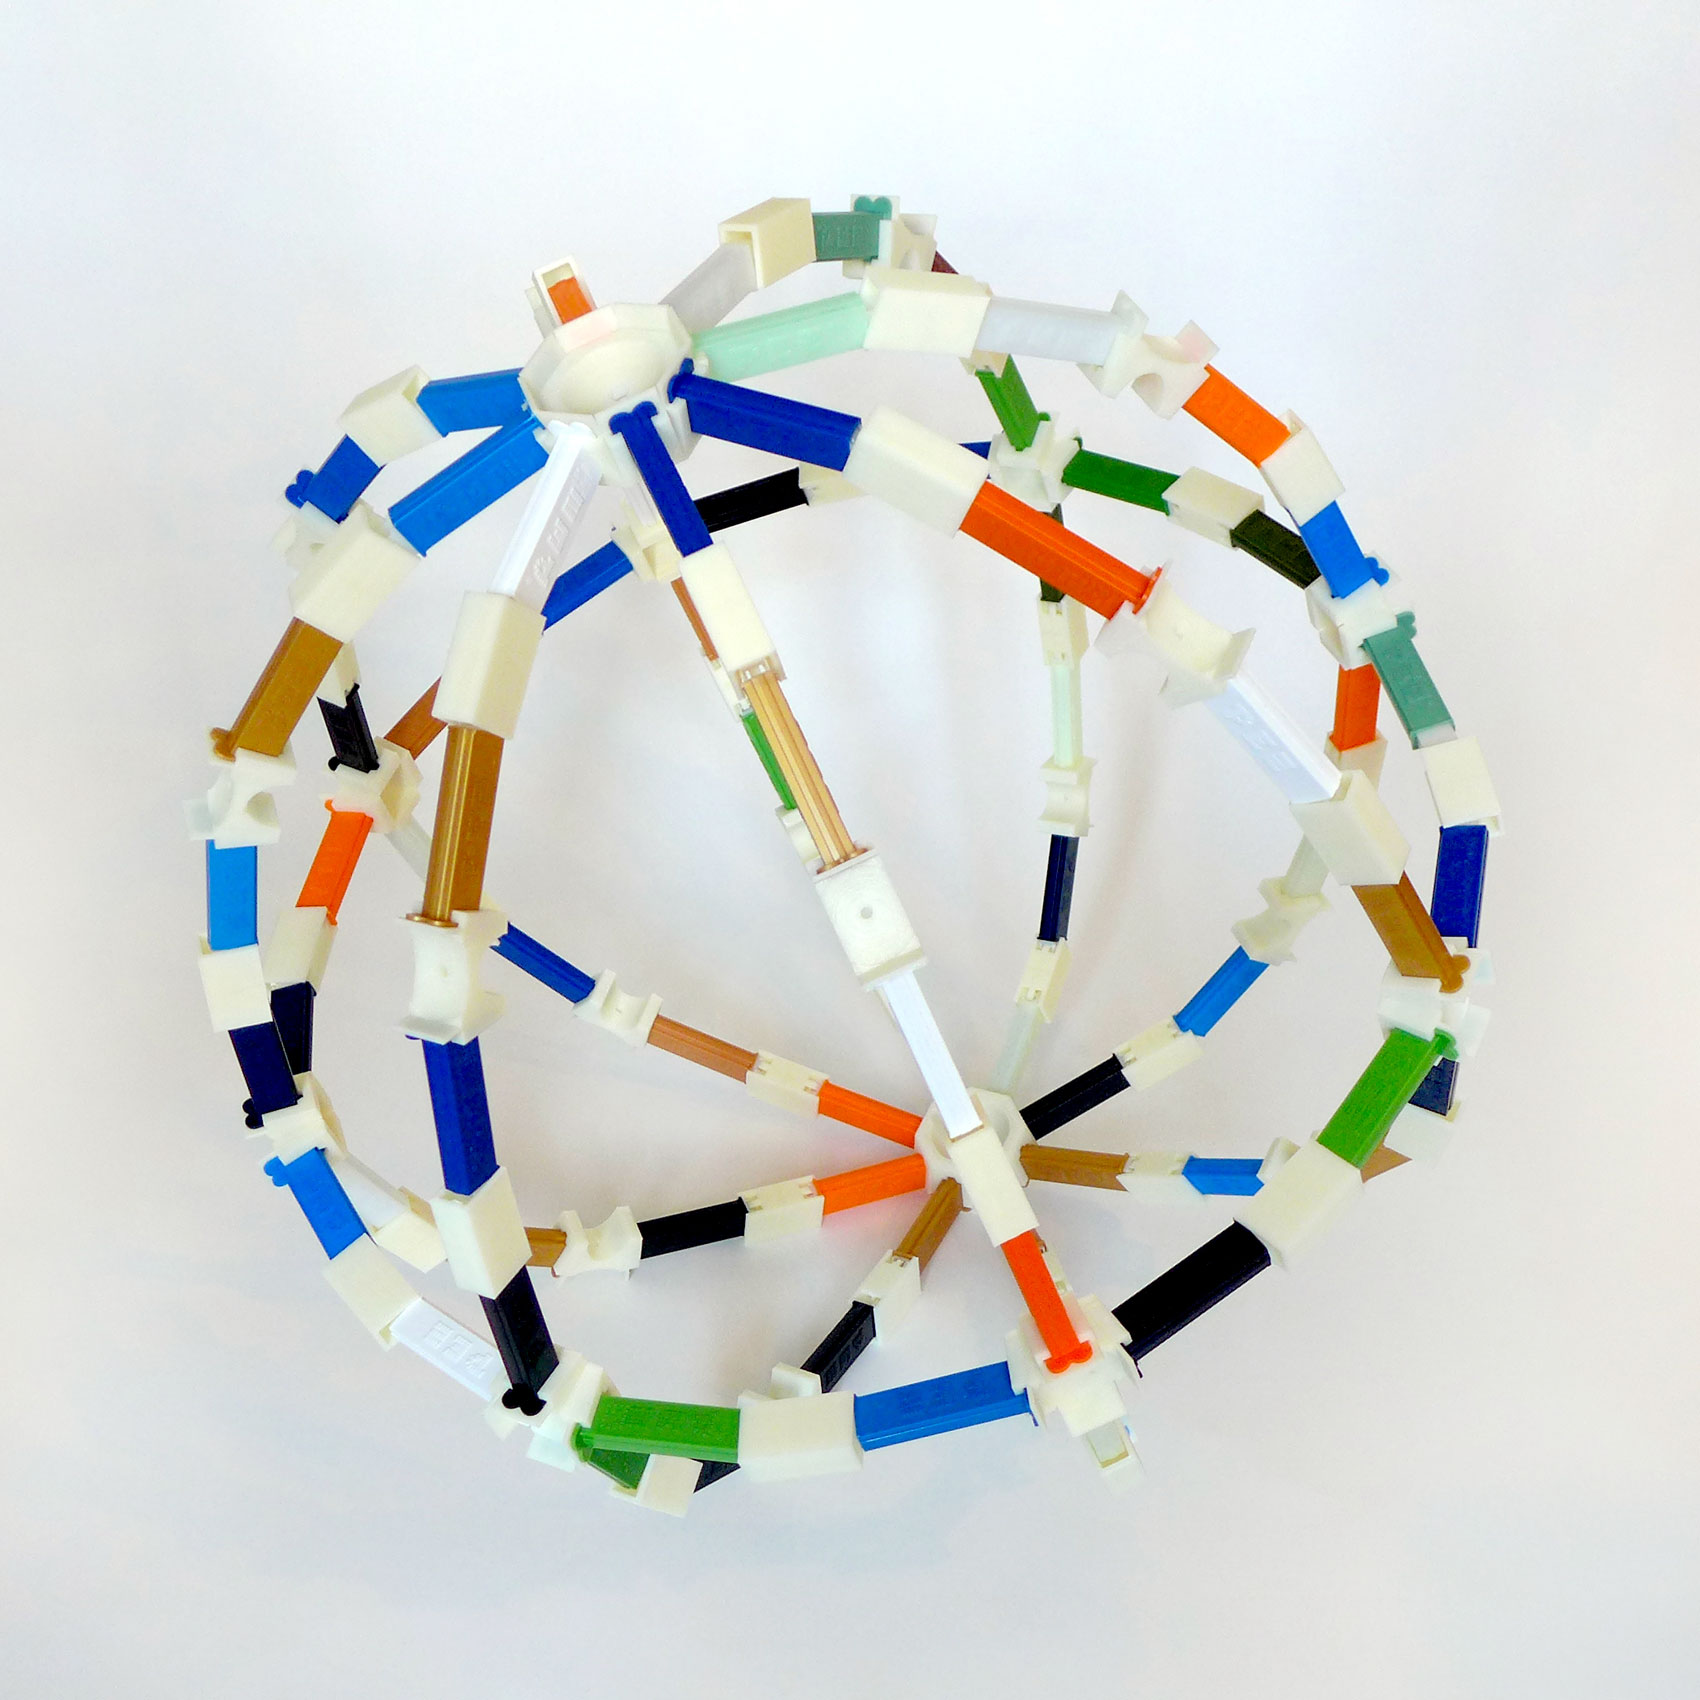 Tom Burtonwood Pez Globe